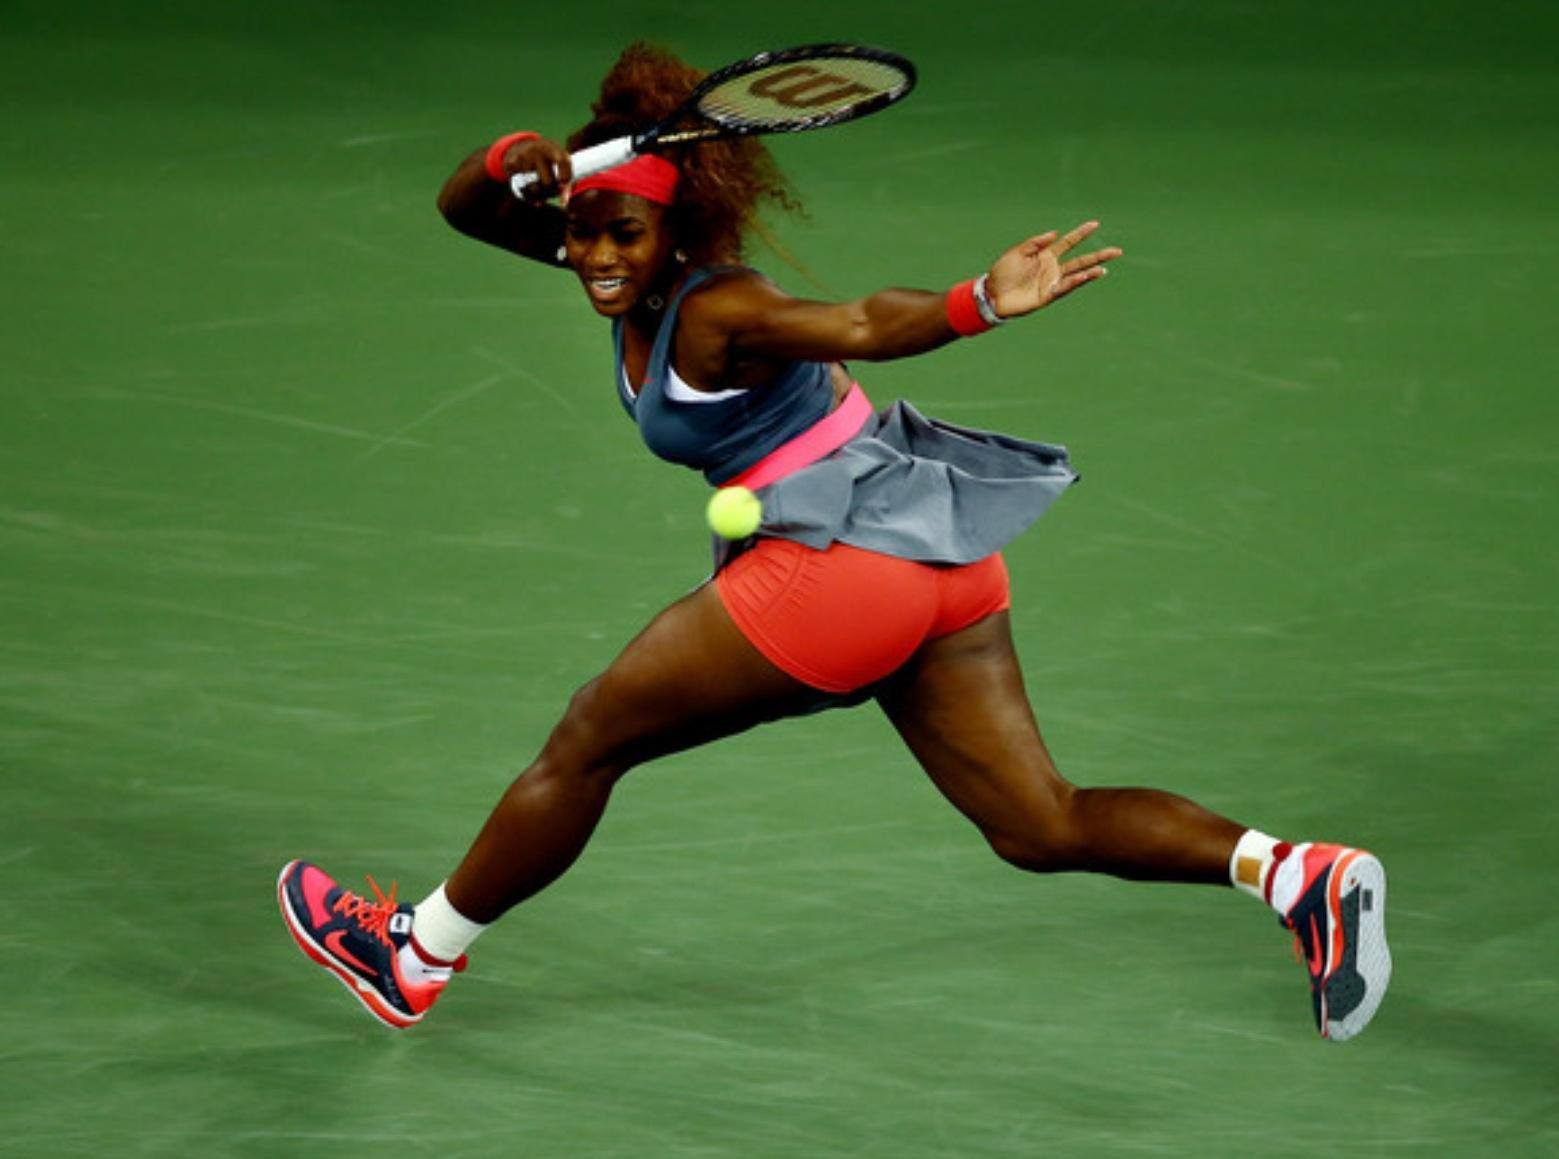 Serena at the US OPEN 2013